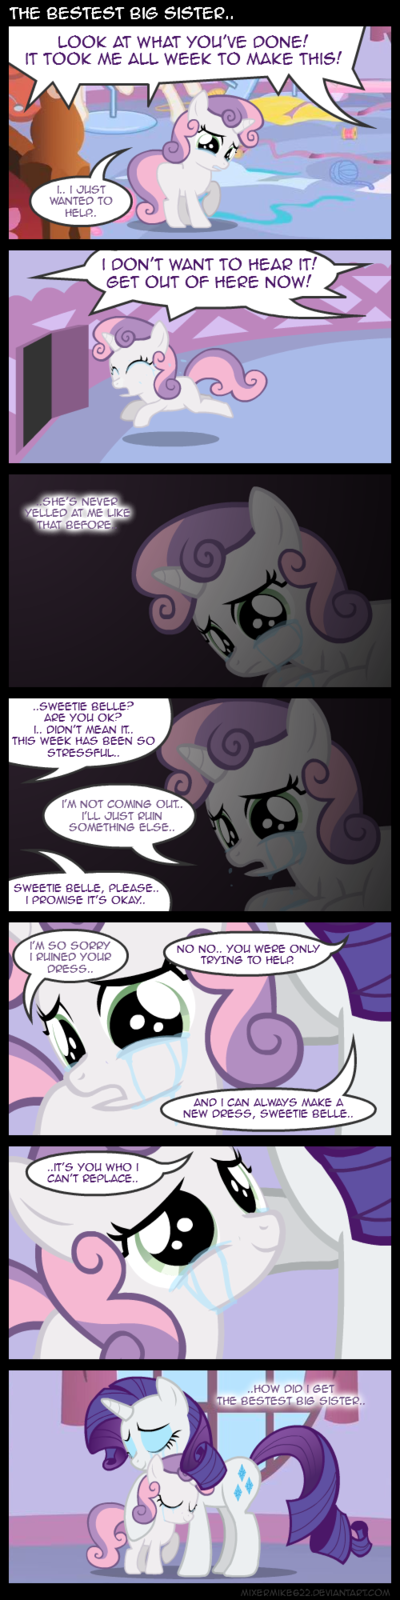 the_bestest_big_sister___by_mixermike622-d41e6tu.png